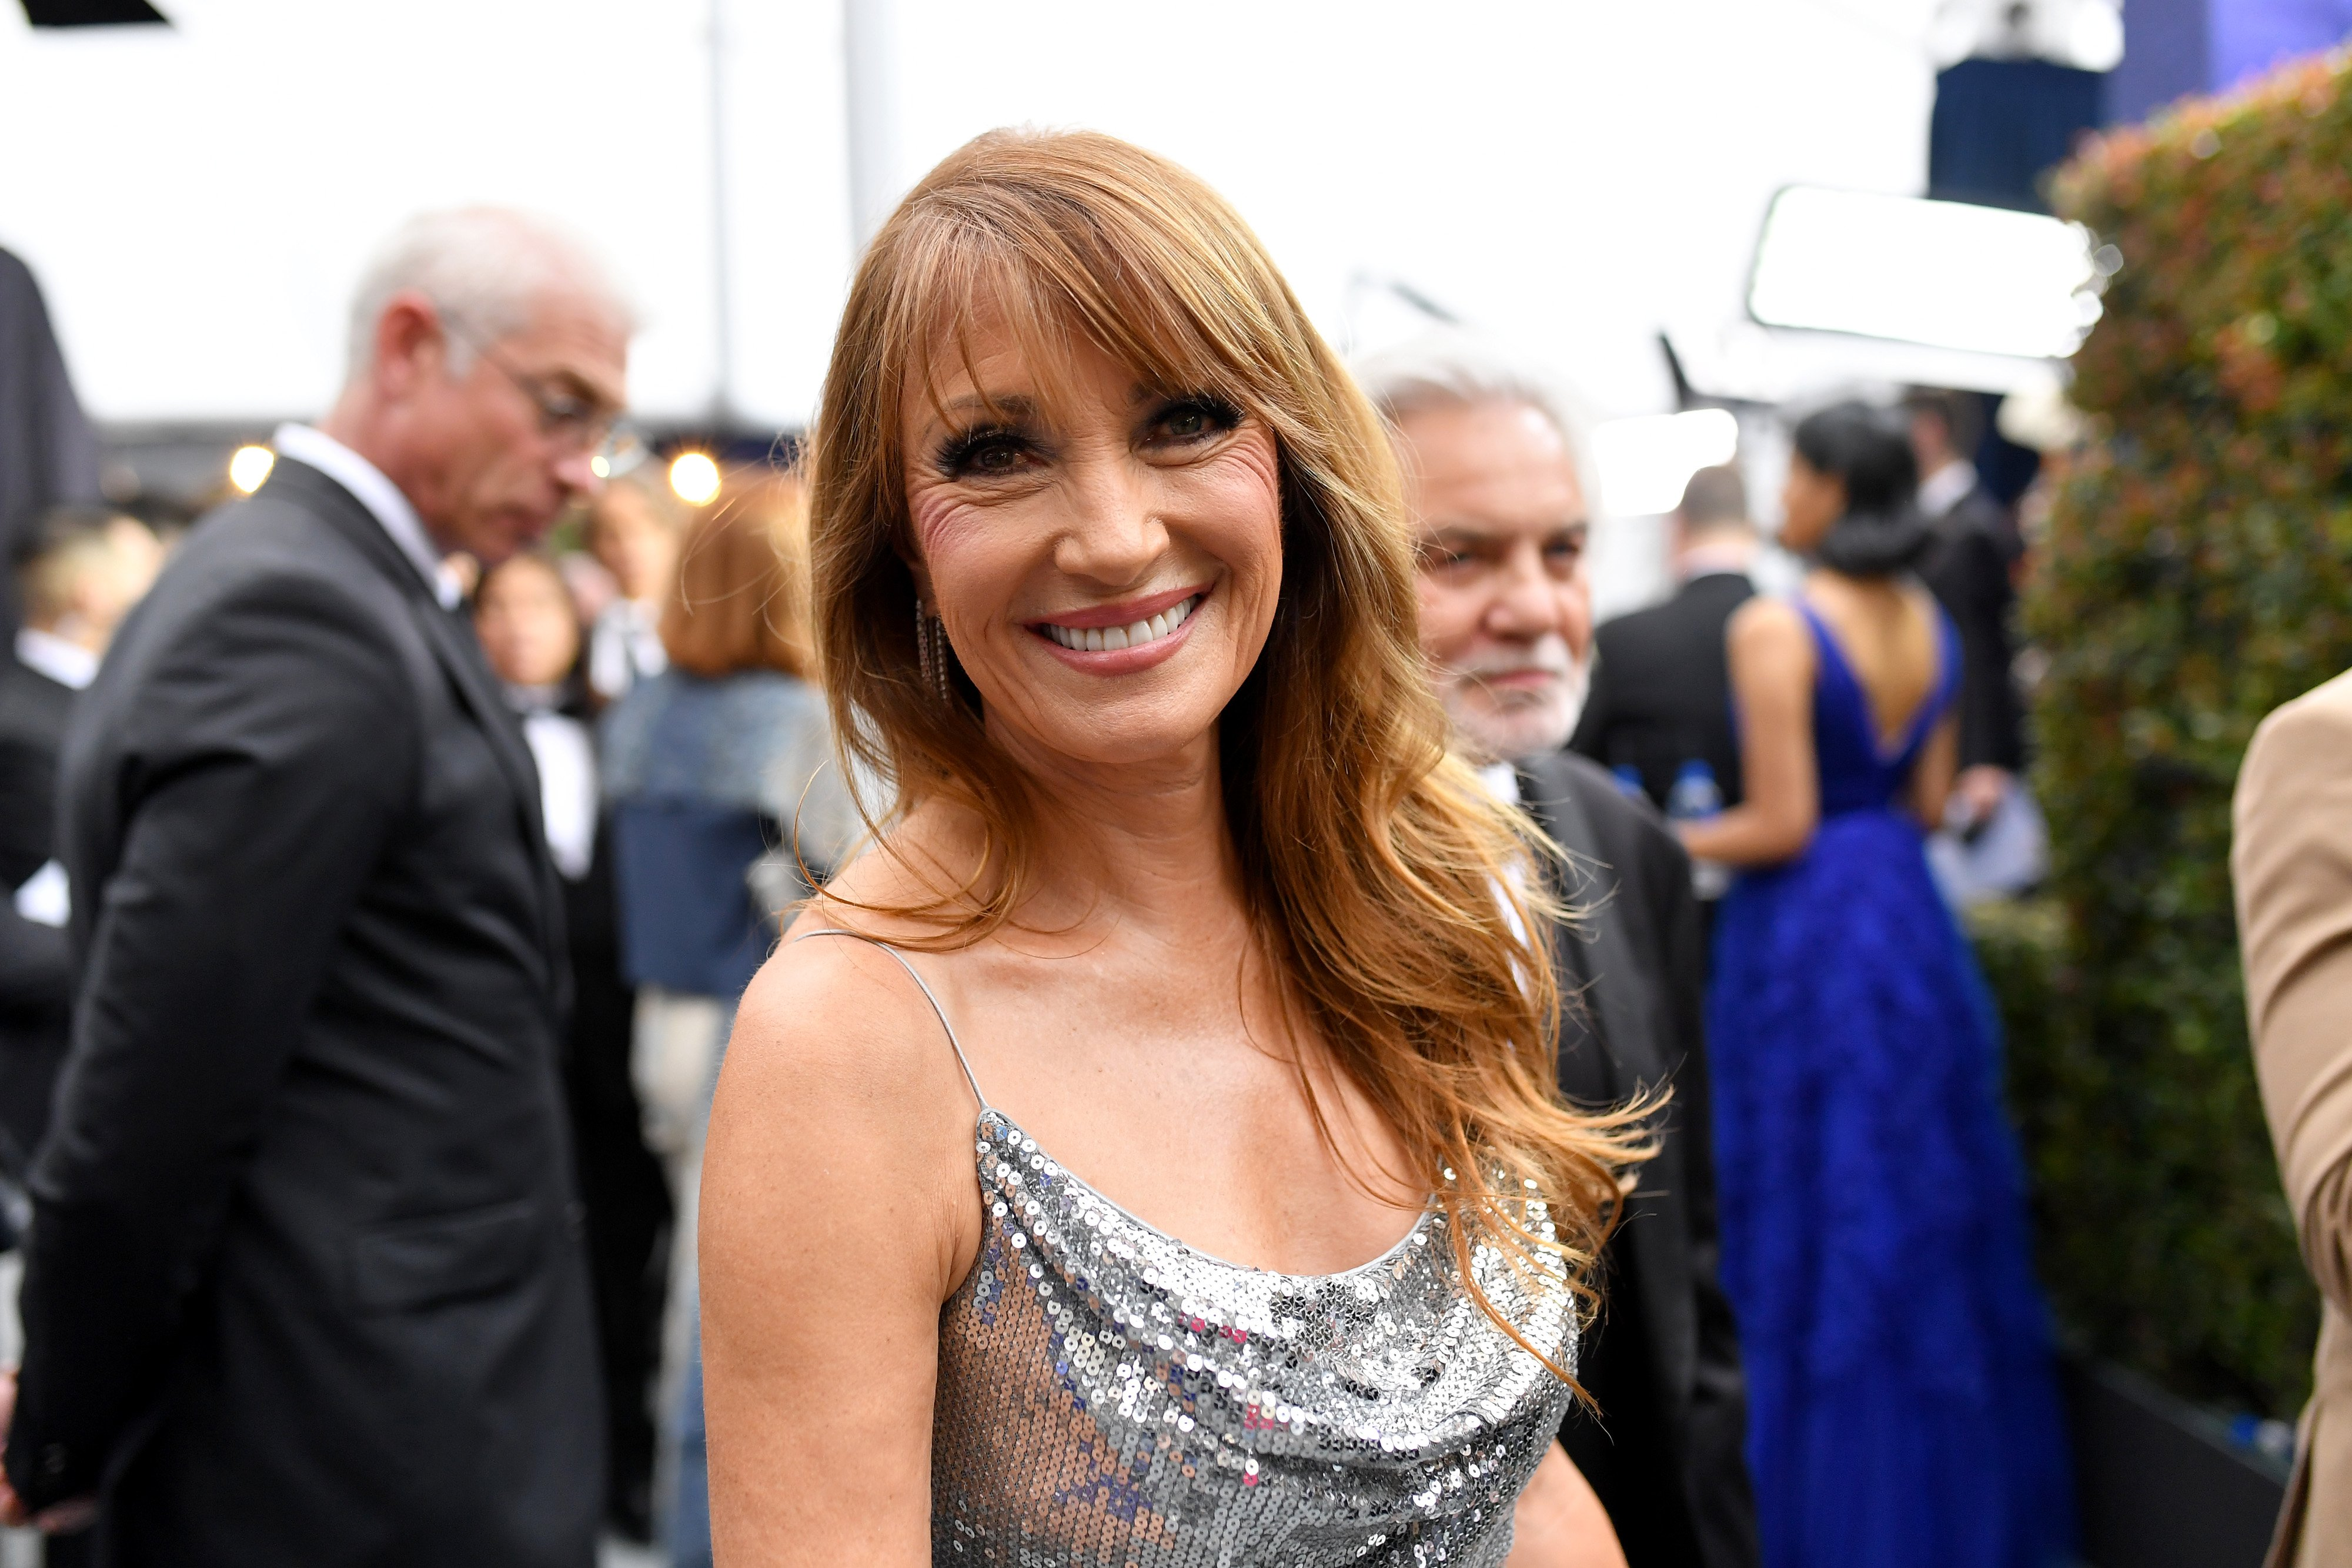 Jane Seymour at the Screen Actors Guild Awards in Los Angeles on January 19, 2020. | Photo: Getty Images